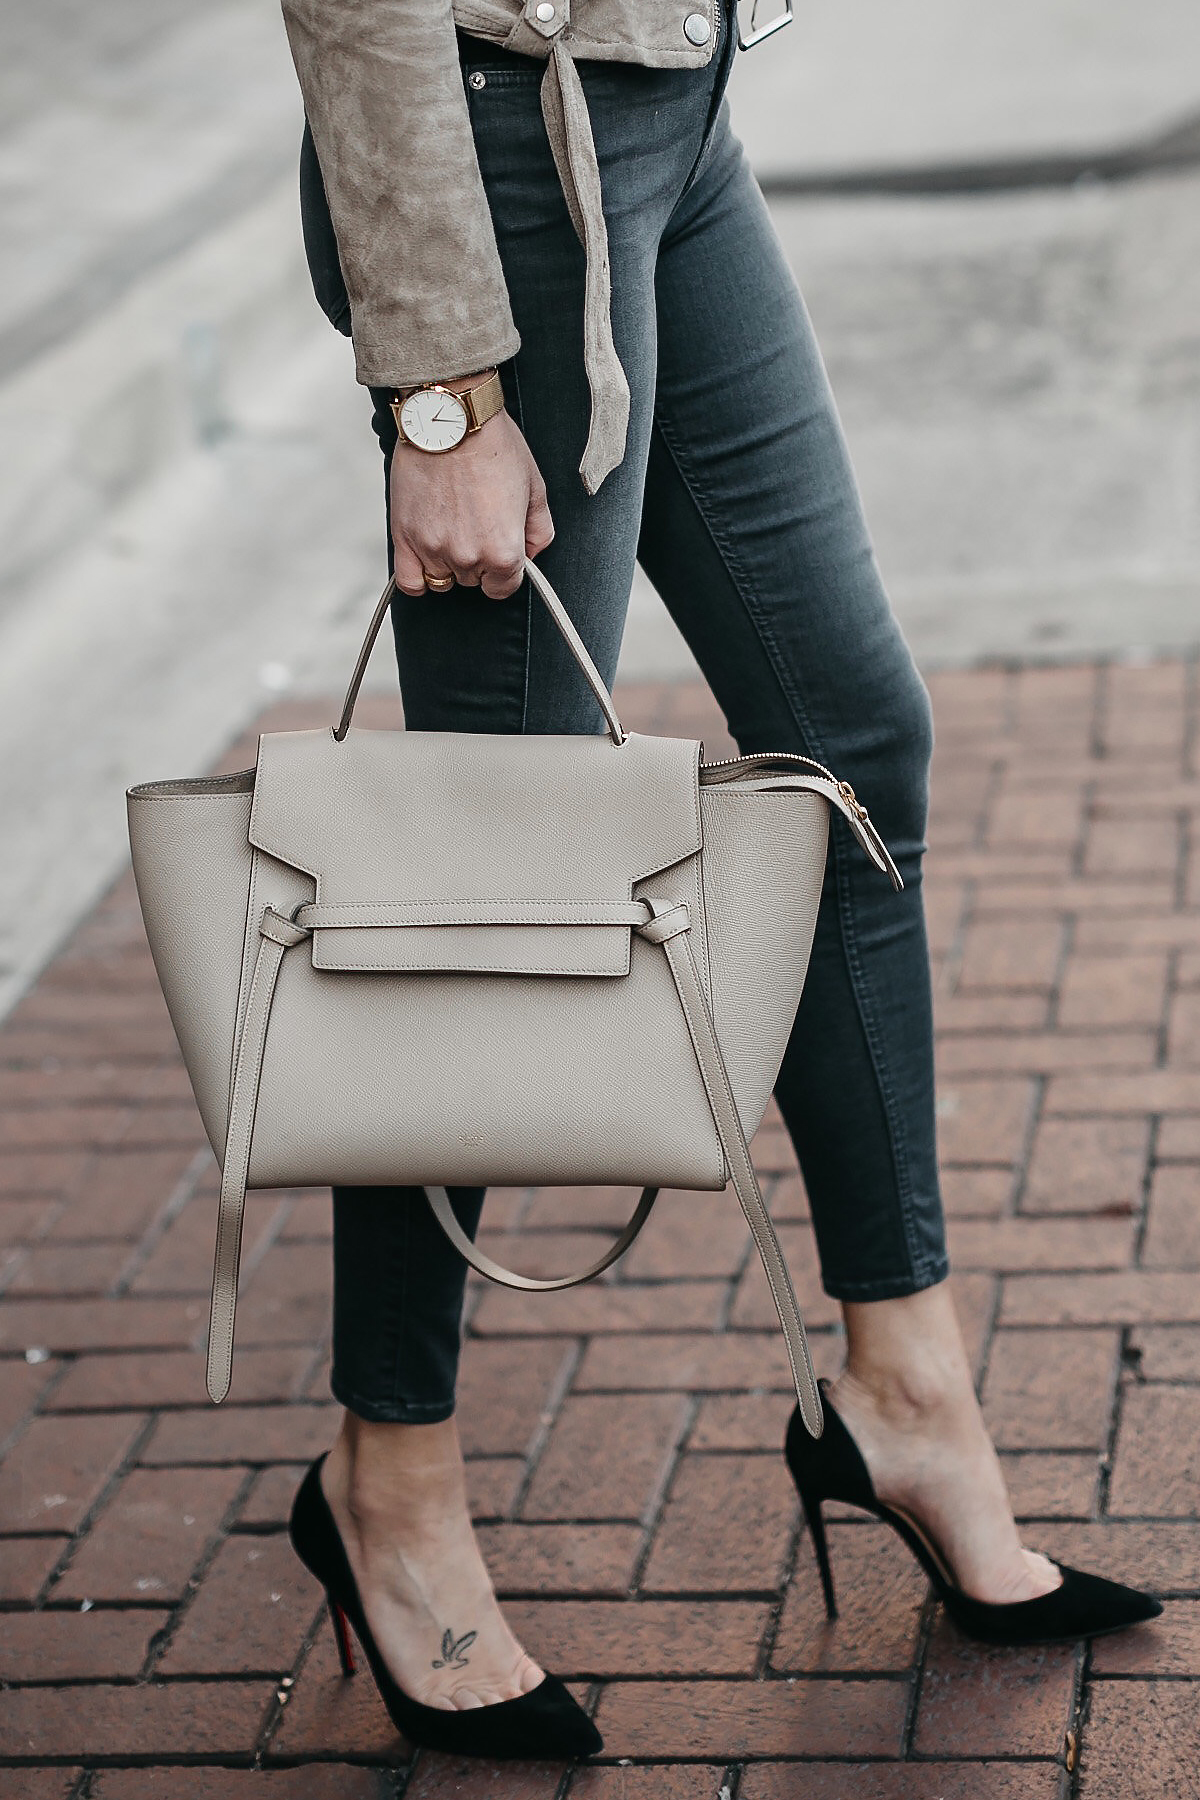 Celine Mini Belt Bag Black Pumps Grey Skinny Jeans Fashion Jackson Dallas Blogger Fashion Blogger Street Style